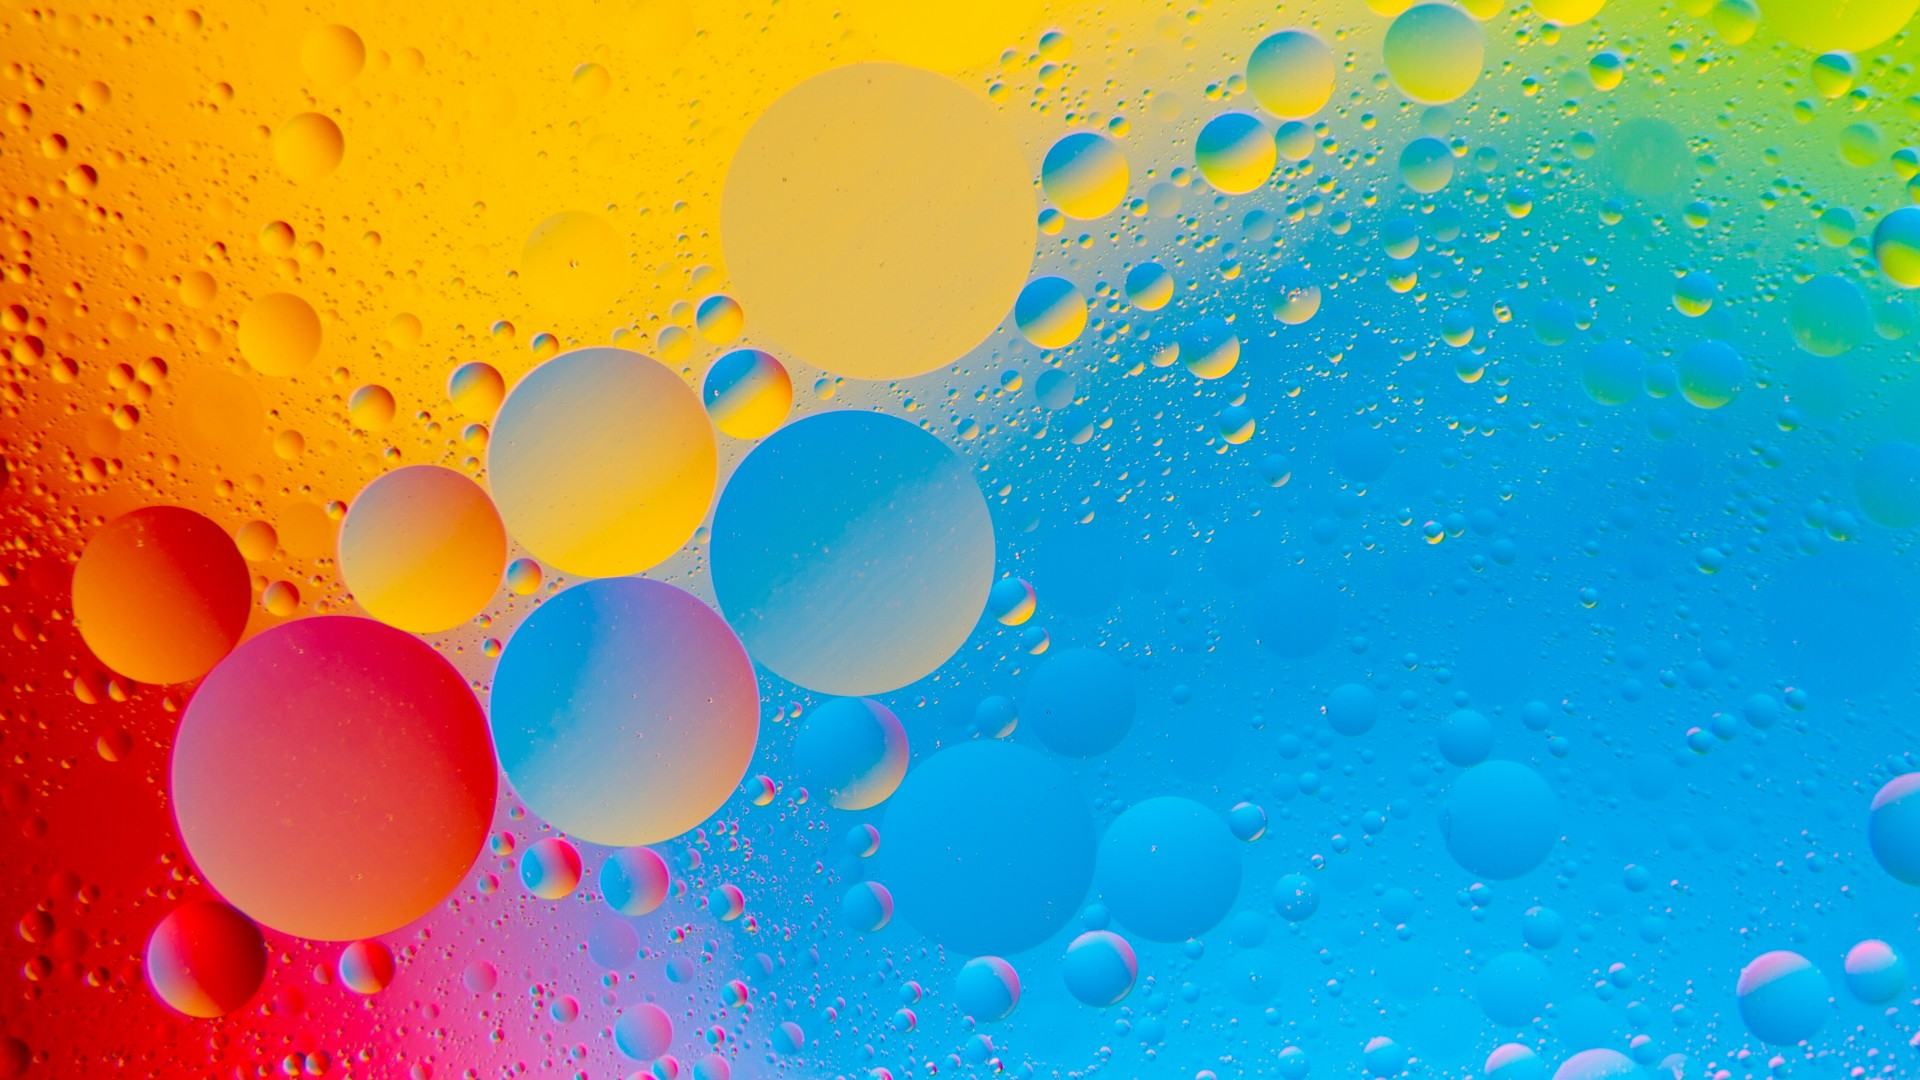 Colourful Bubbles 4K HD Abstract Wallpaper iPhone 7 Plus iPhone 1920x1080